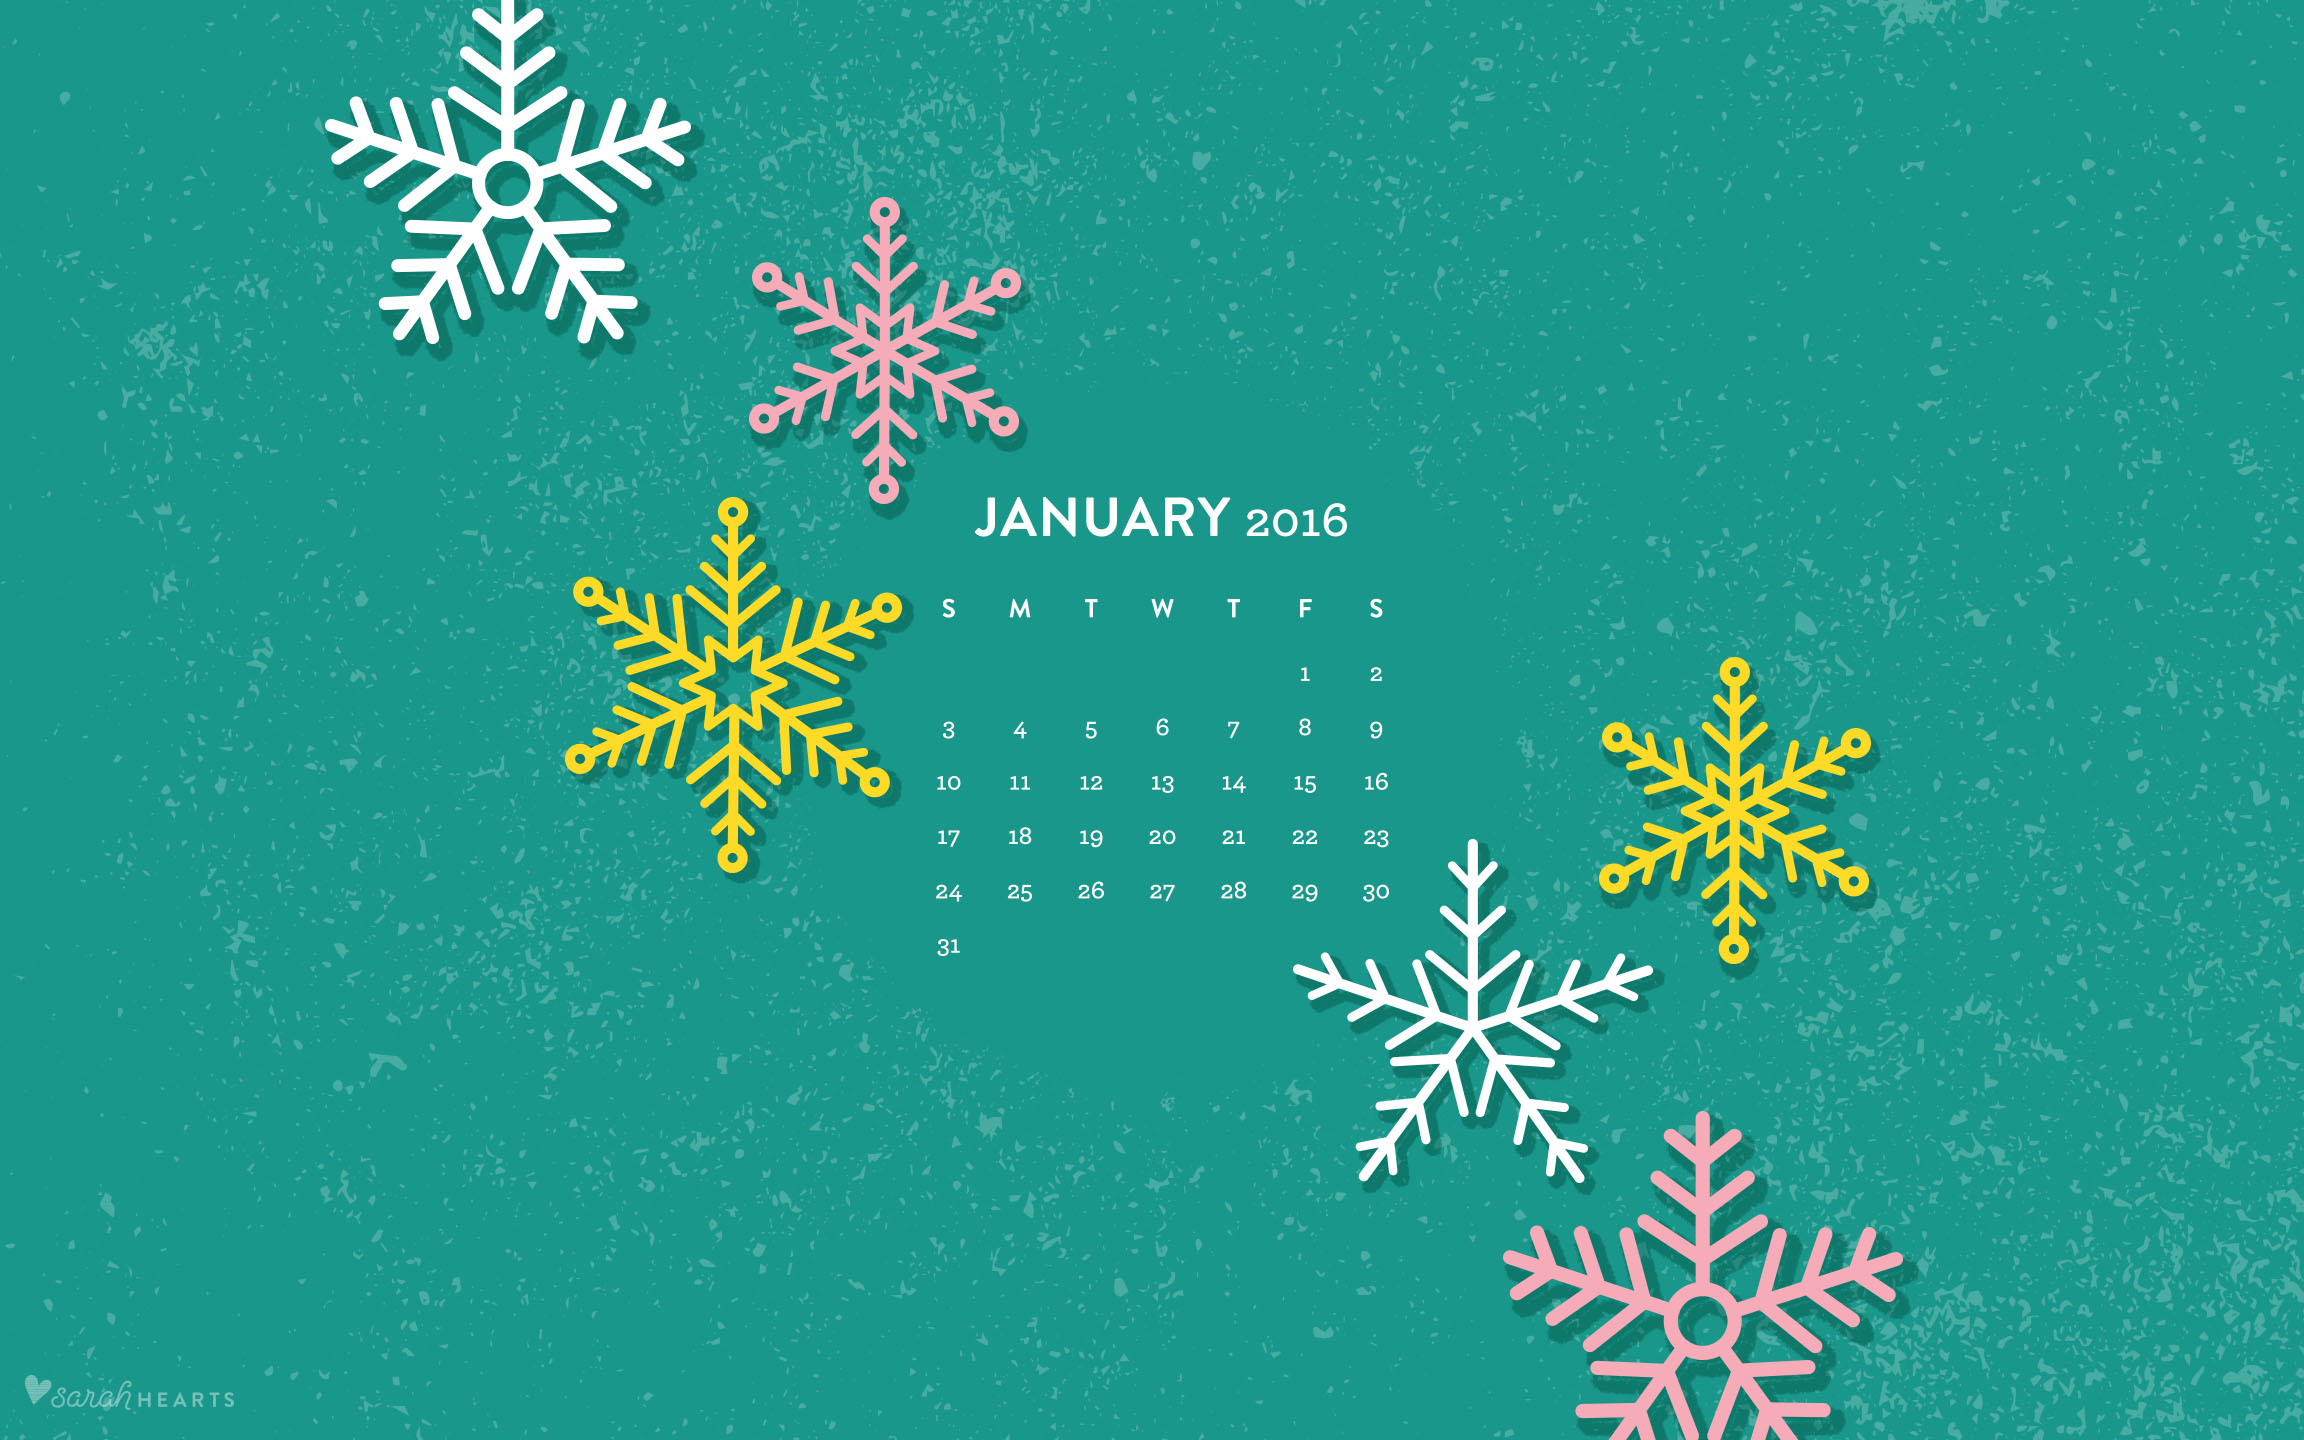 January 2016 Calendar Wallpaper Sarah Hearts